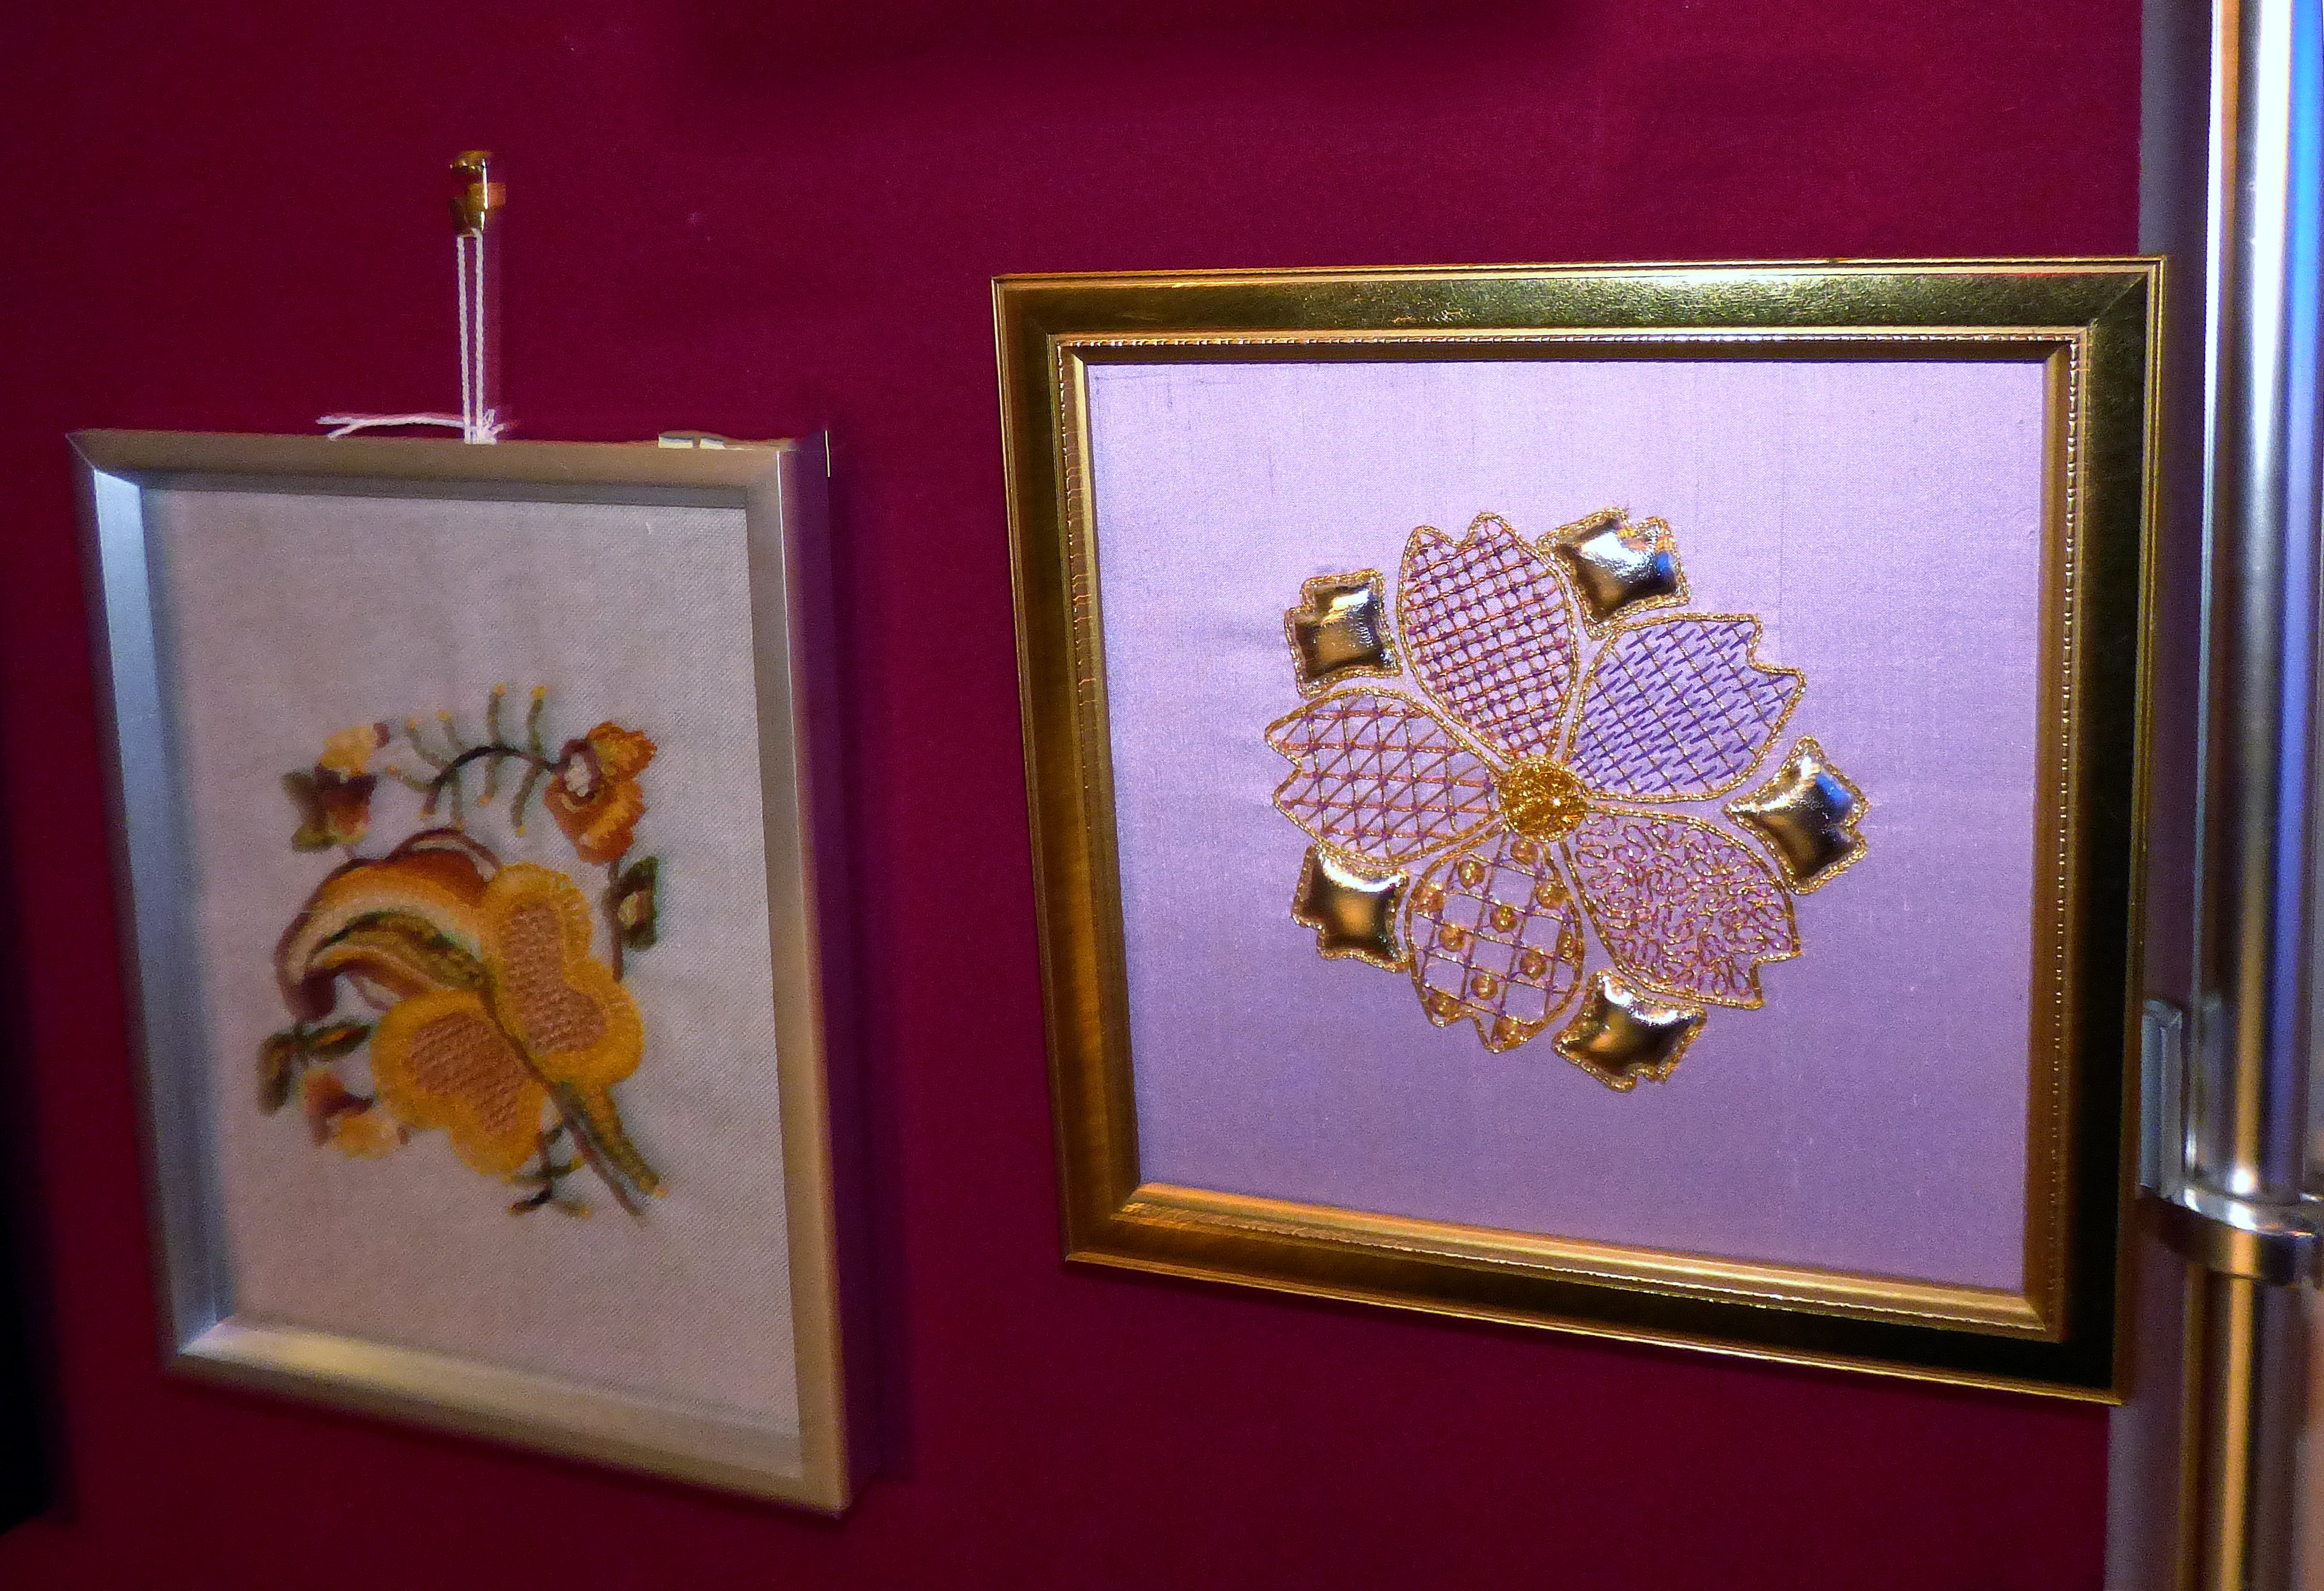 CREWELWORK by F.Trotman and GOLDWORK by H.McCormack, at Embroidery for Pleasure exhibition, Liverpool Metropolitan Cathedral 2016